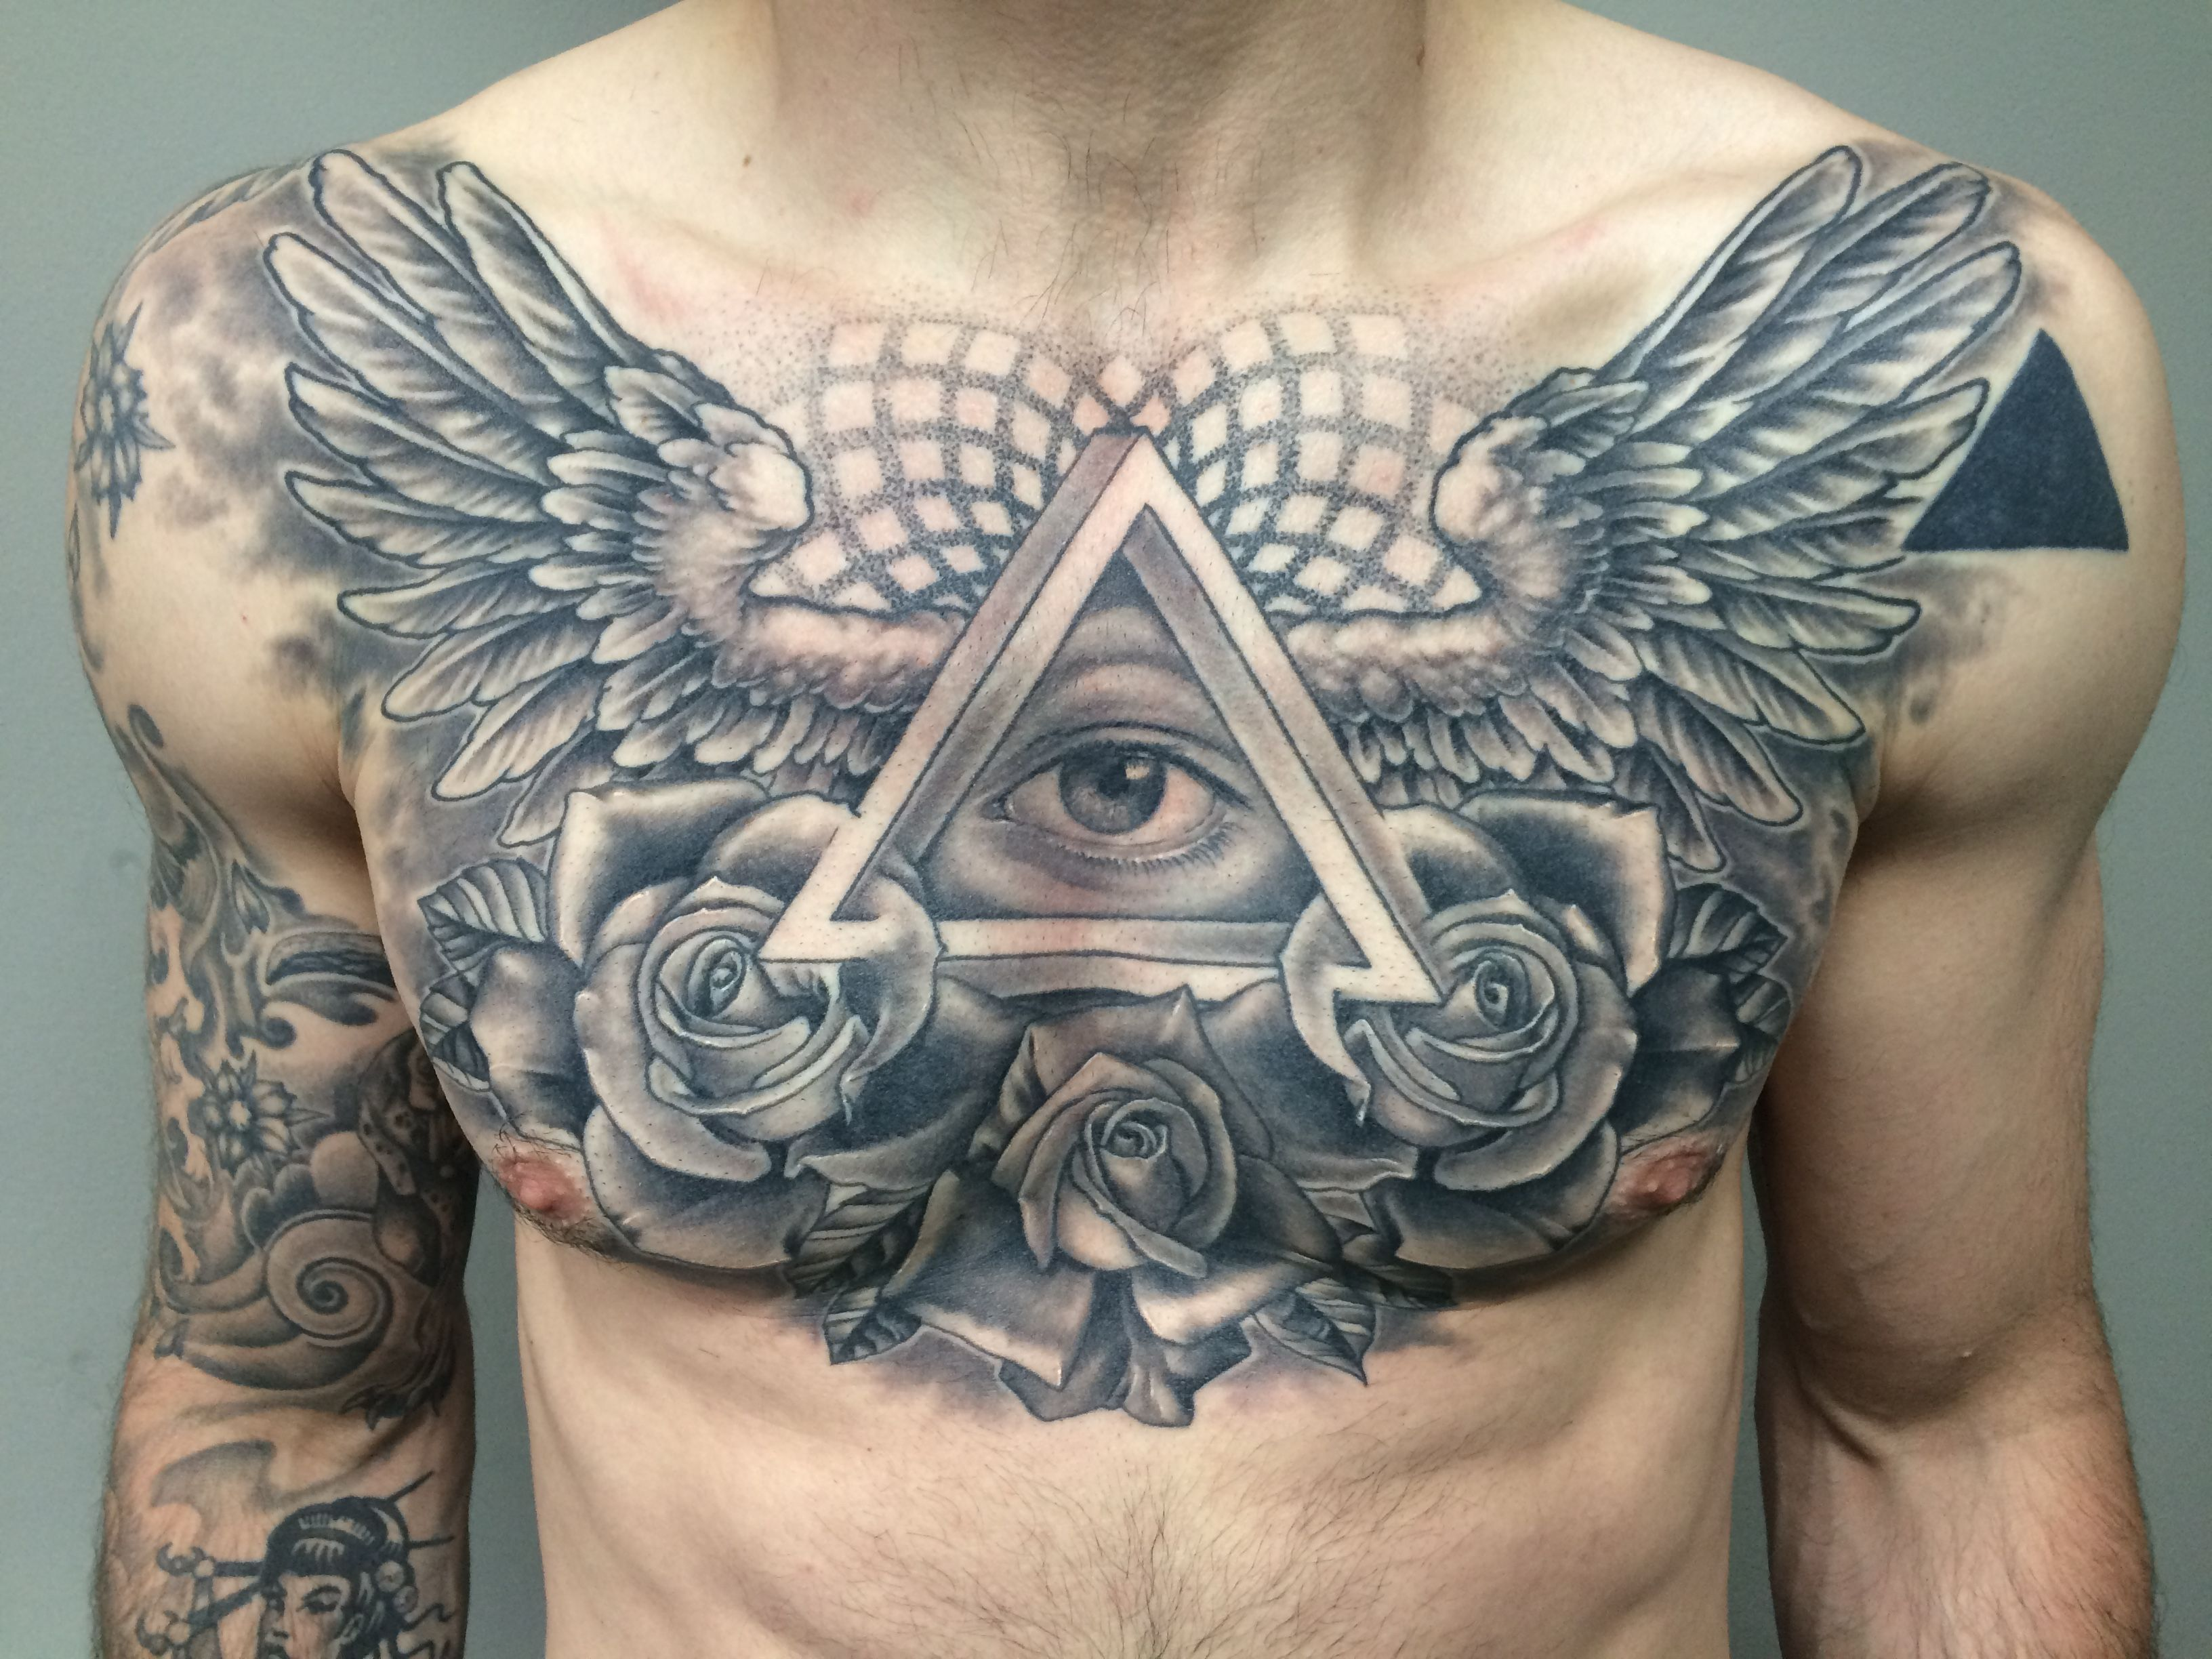 Tattoo Ideas For Women Chest: Awesome Chest Tattoo Ideas For Men